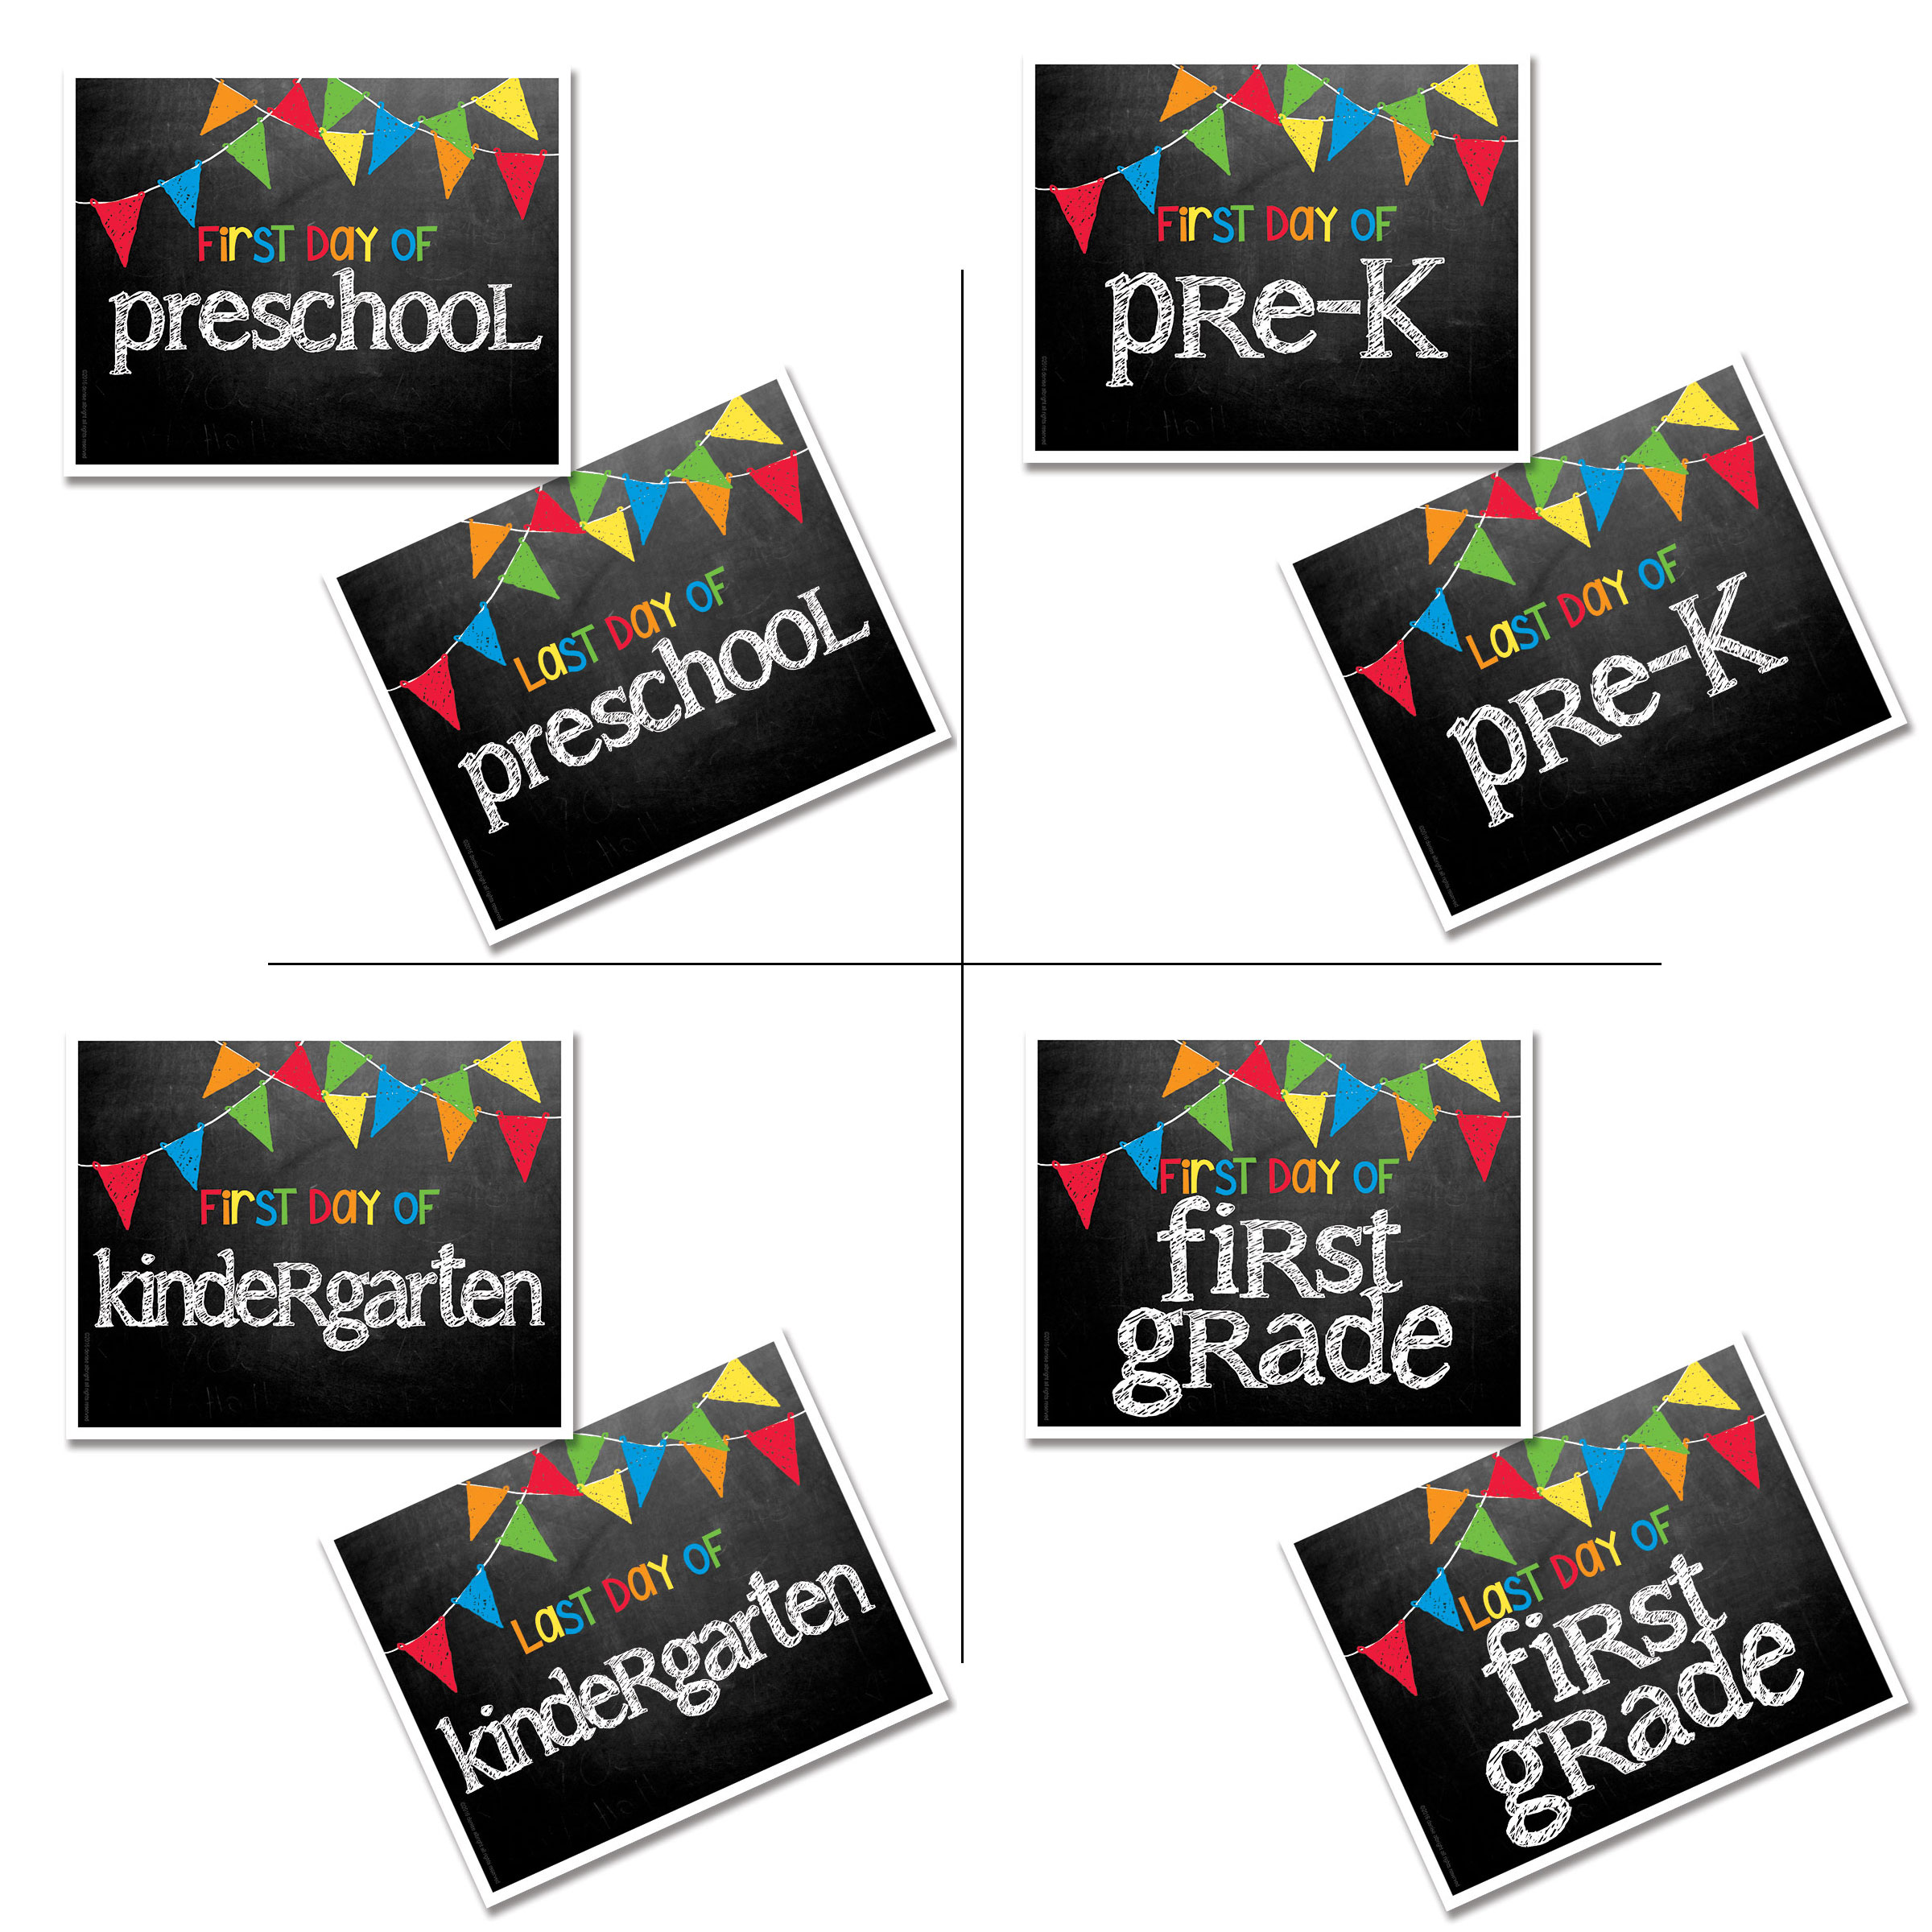 Last Day First Day Of School 8x10 Photo Prop Signs Entire Series